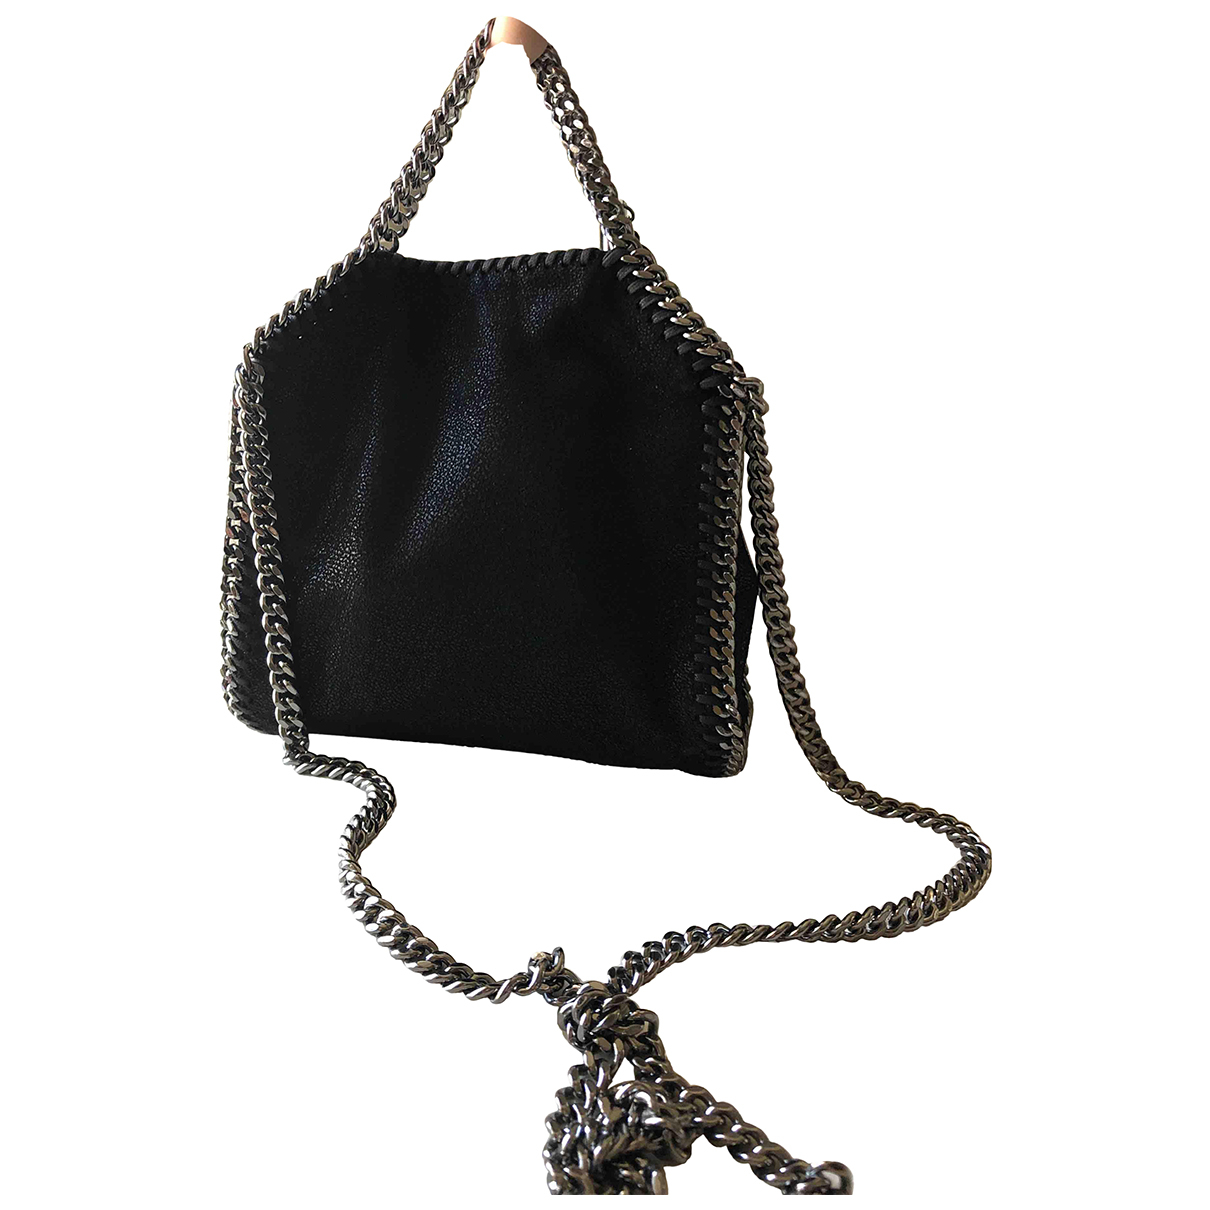 Stella Mccartney \N Black Leather handbag for Women \N